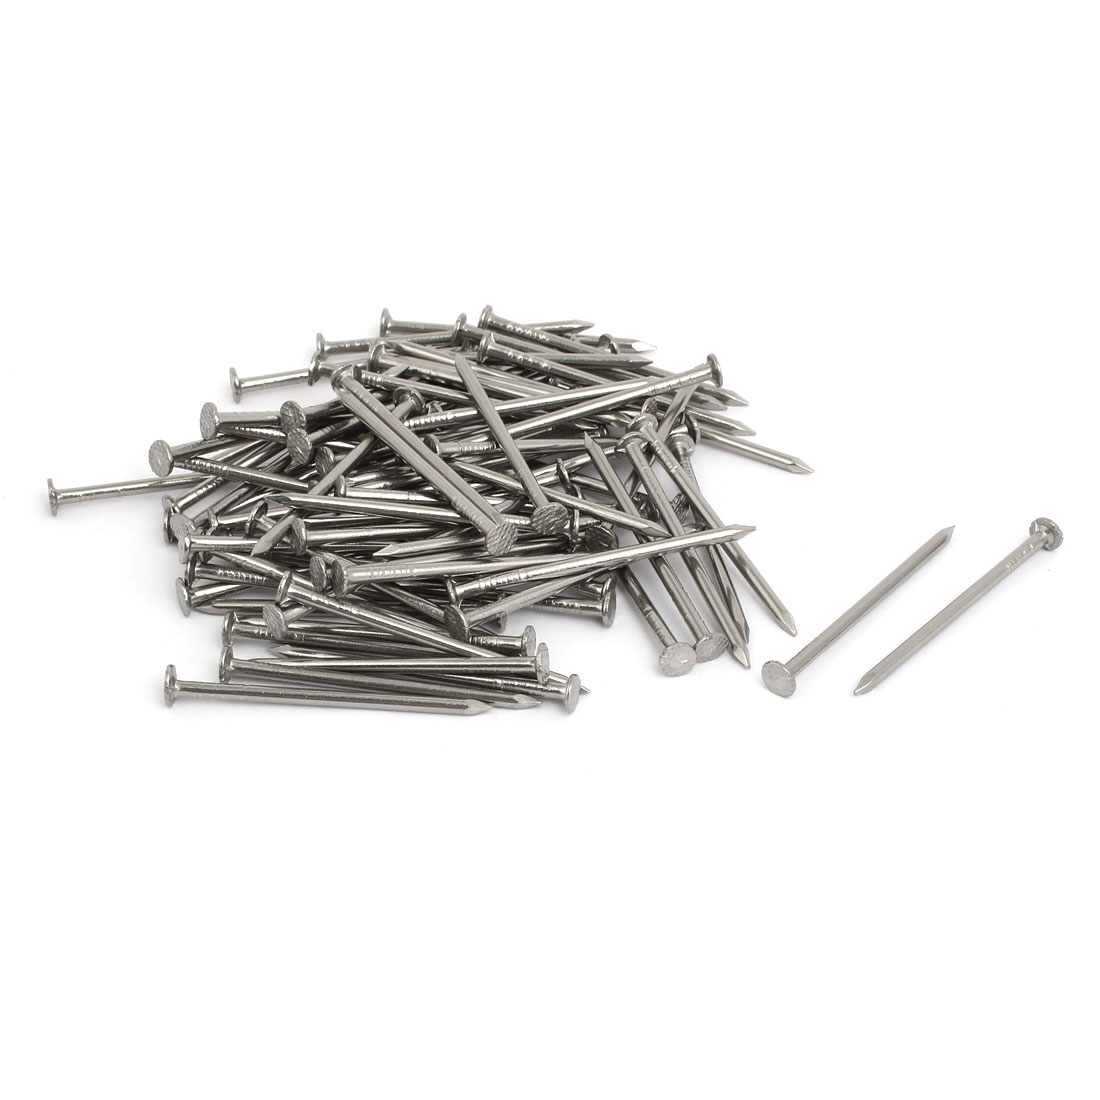 2 Inch Length 316 Stainless Steel Cement Wood Sliding Nail Silver Tone 80pcs